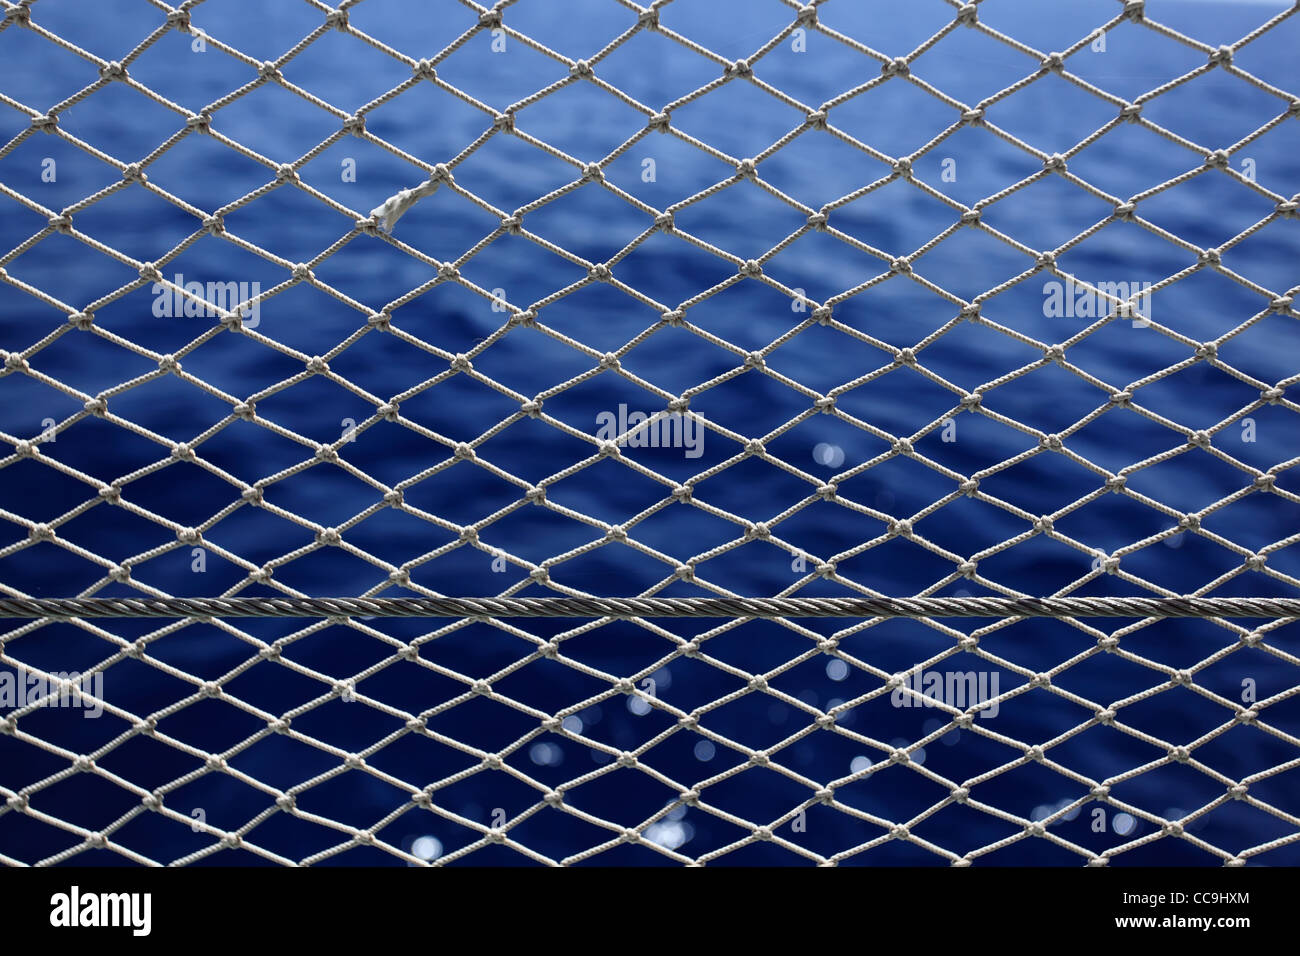 Net with deep blue sea on a background. - Stock Image